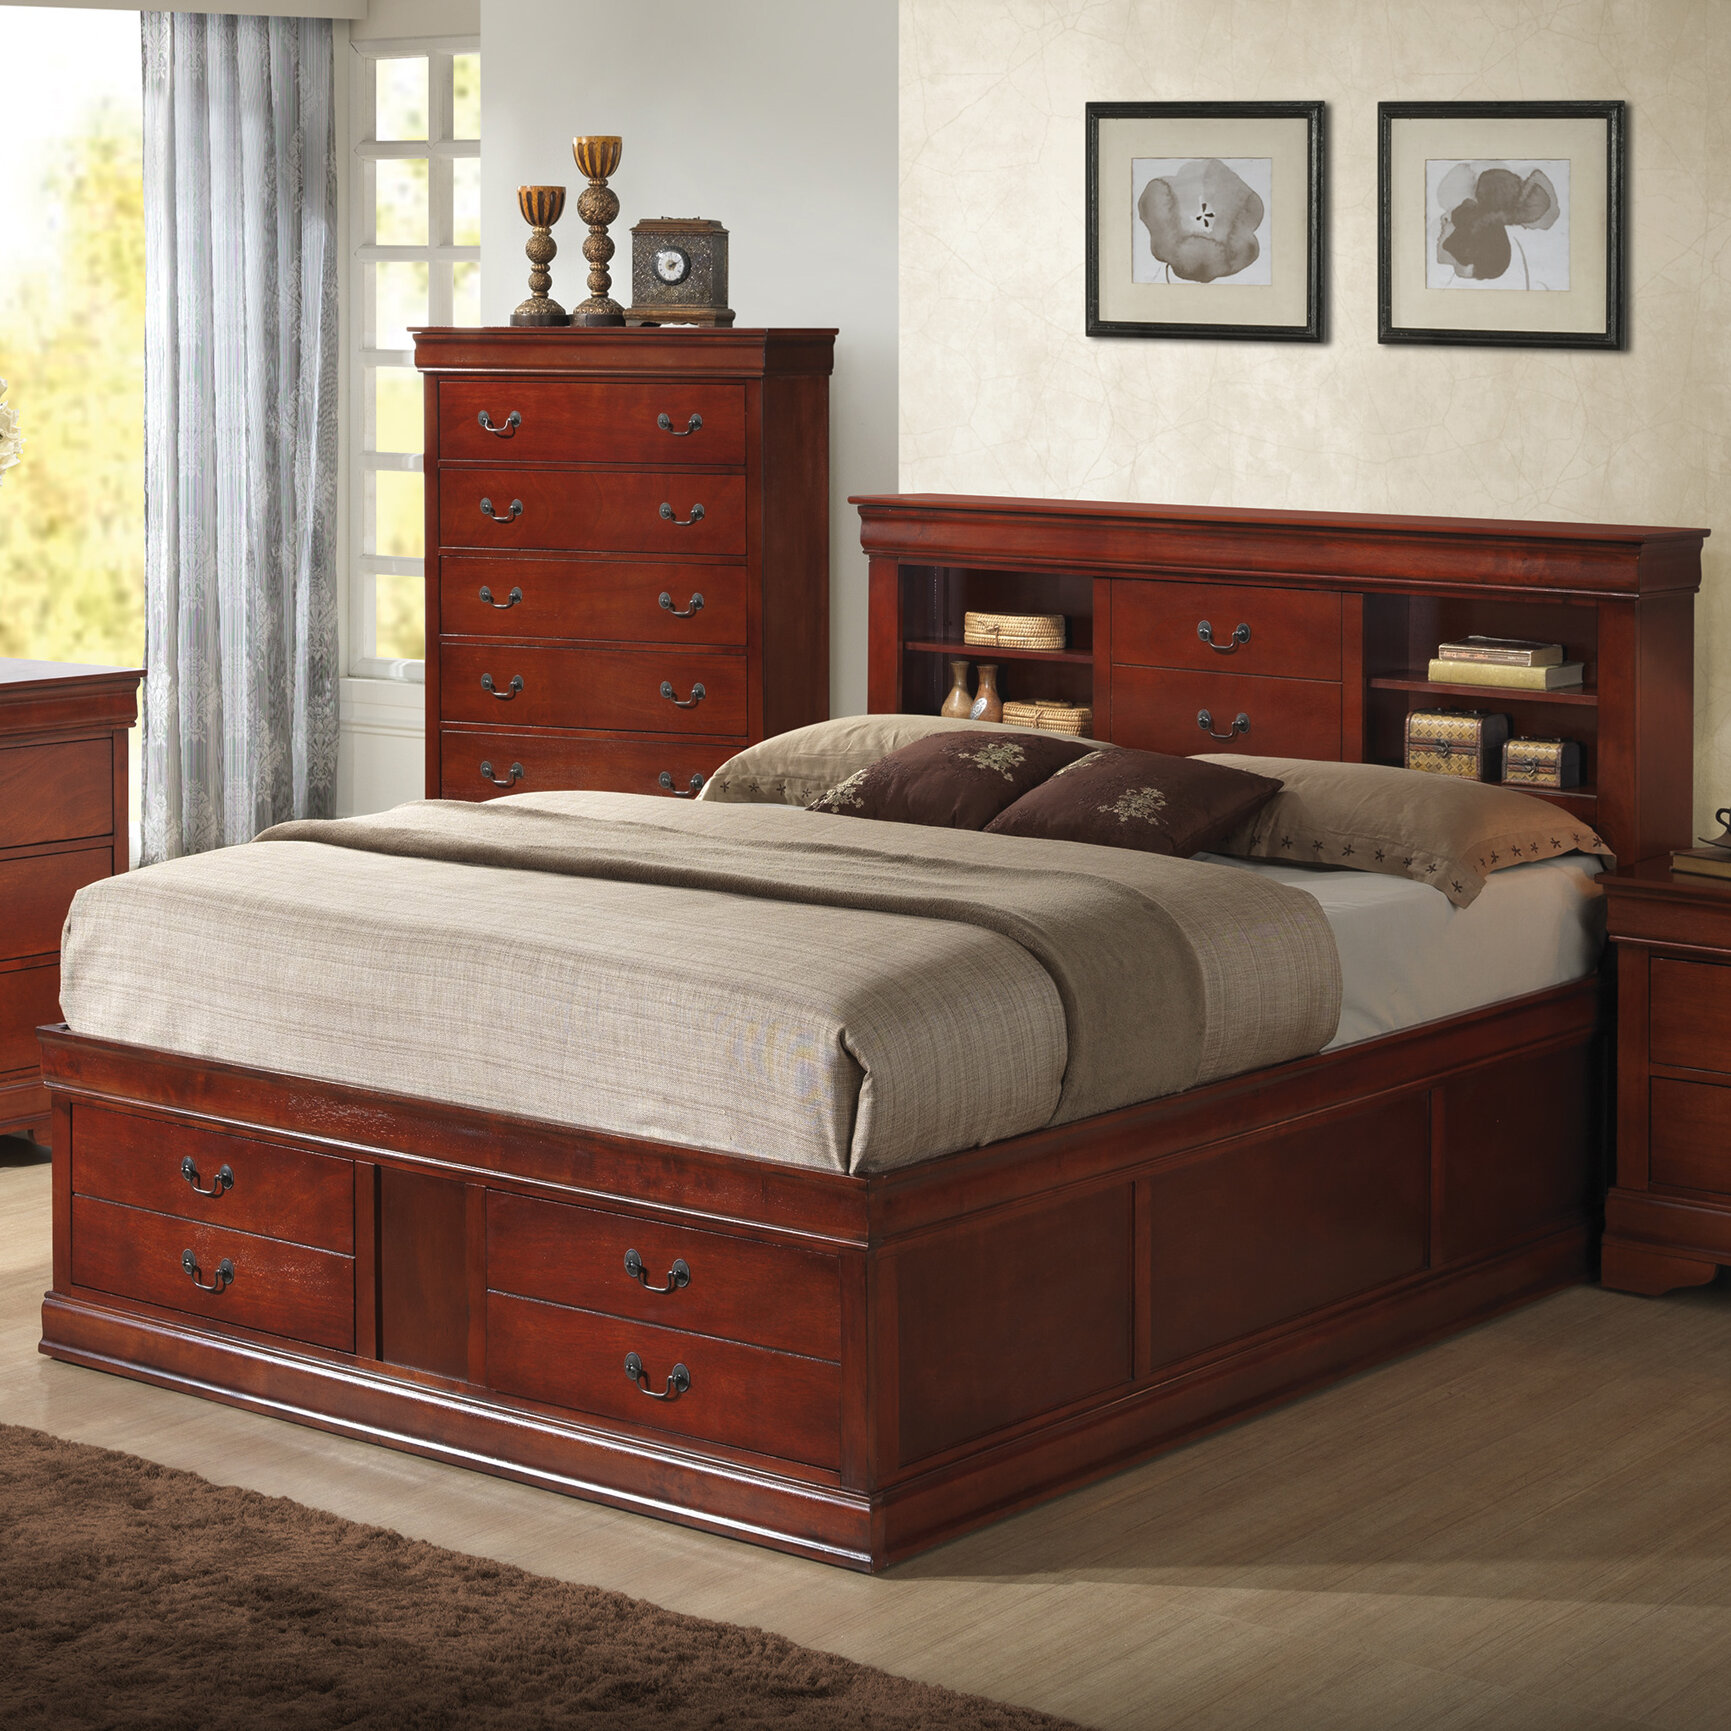 laurel foundry modern farmhouse tina traditional platform bed